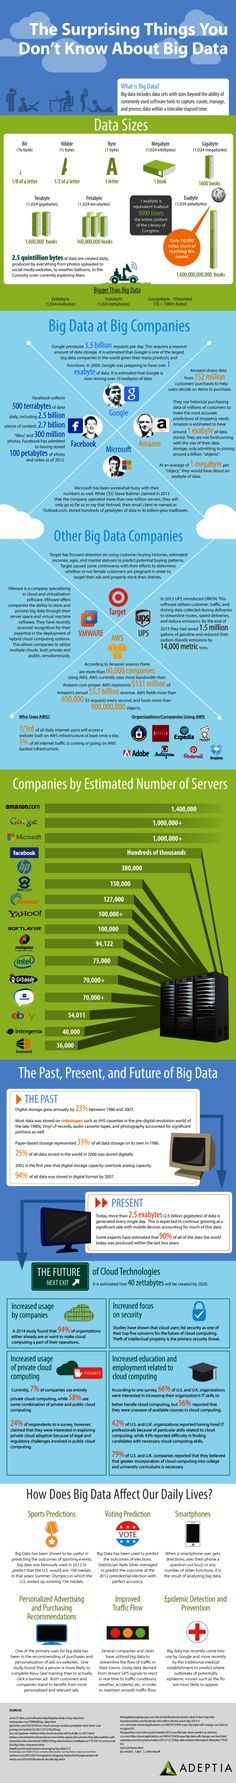 The Surprising Things You Don't Know About Big Data - Big Data News